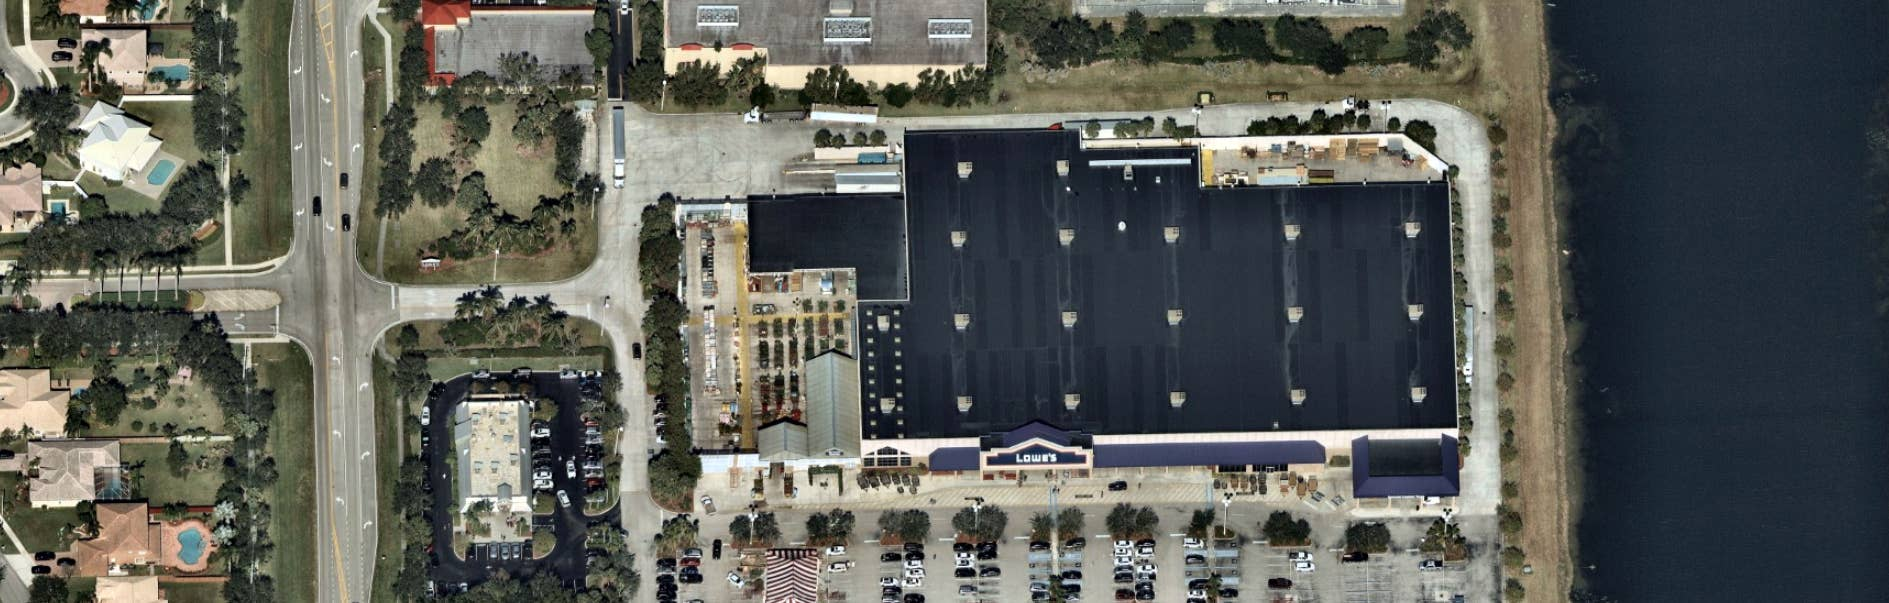 aerial, panorama, shopping center, Ft Lauderdale, FL, 2017 Dec 10